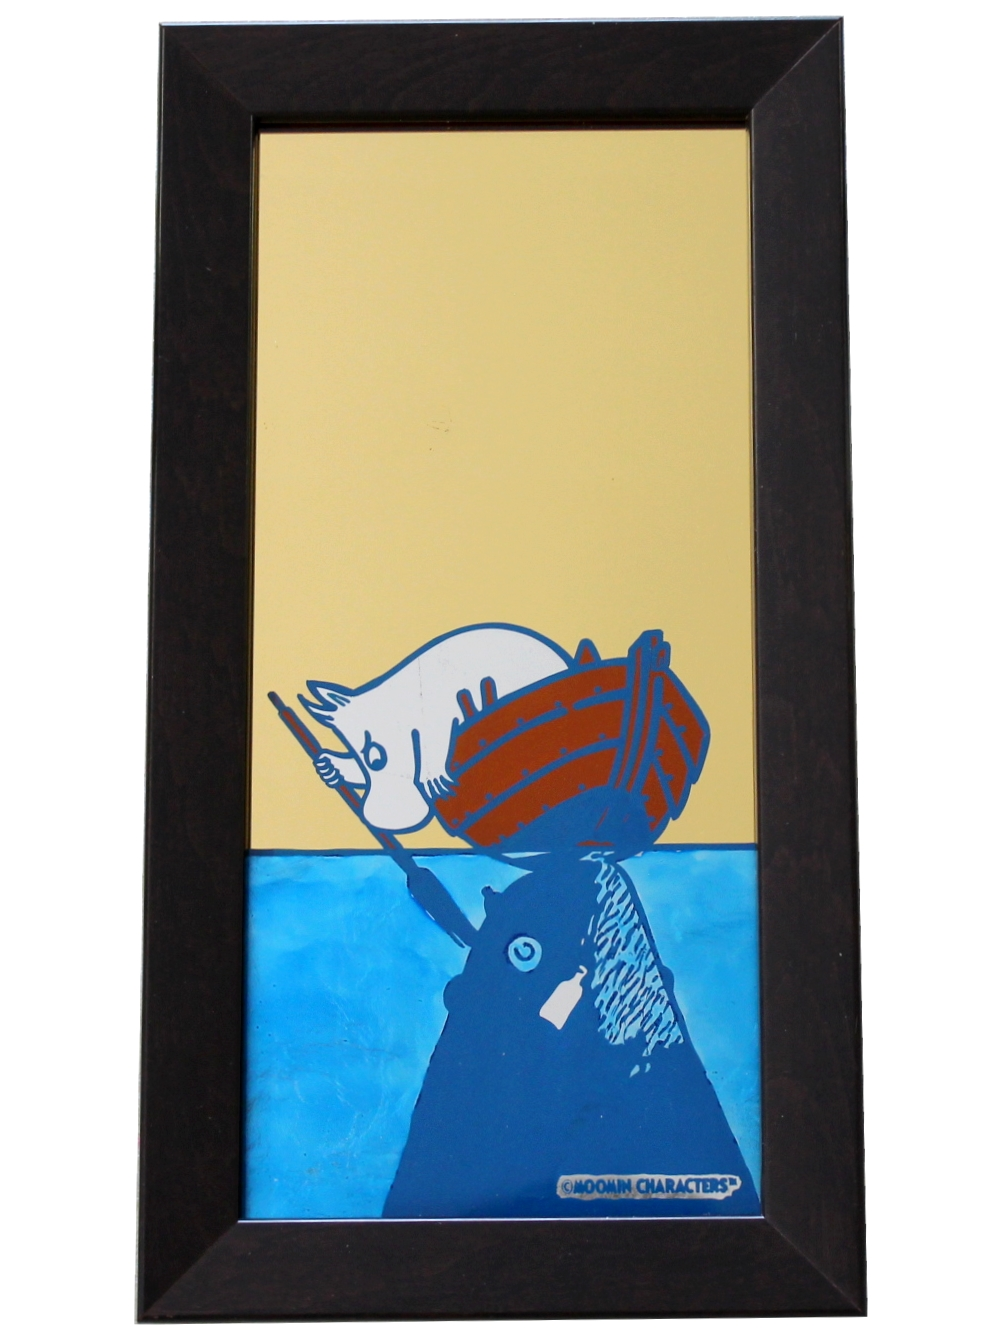 Oslo Skiltmaler Moomin Glass Art | #OurSea Campaign Glass no. 2